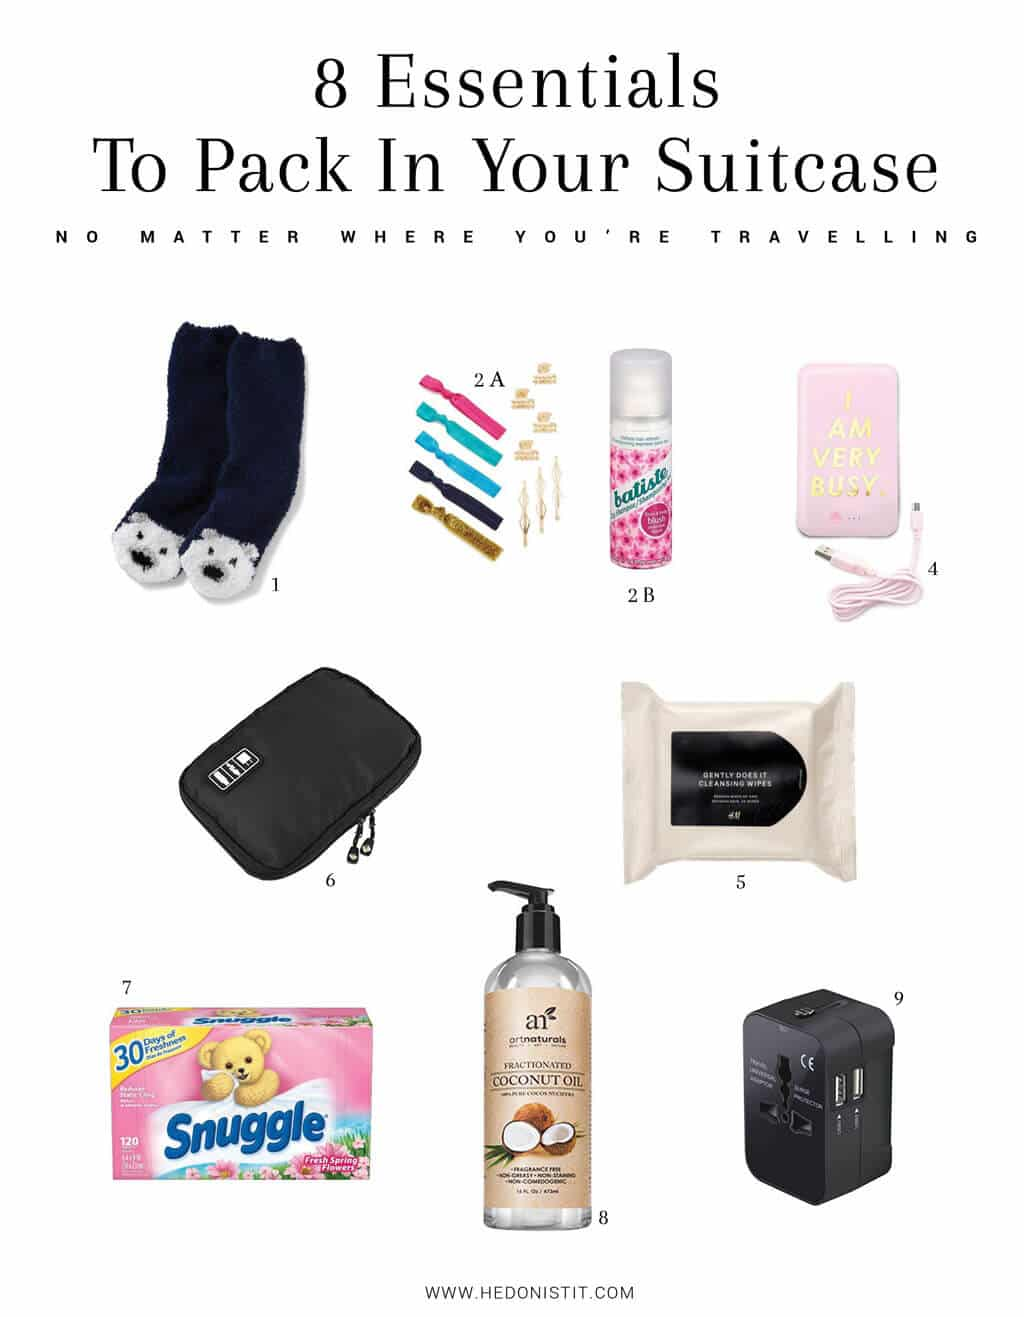 8 essentials to pack in your suitcase no matter where you're travelling - if your about to pack tour suitcase for another beautiful travel destination don't forger to pack these 8 essentials